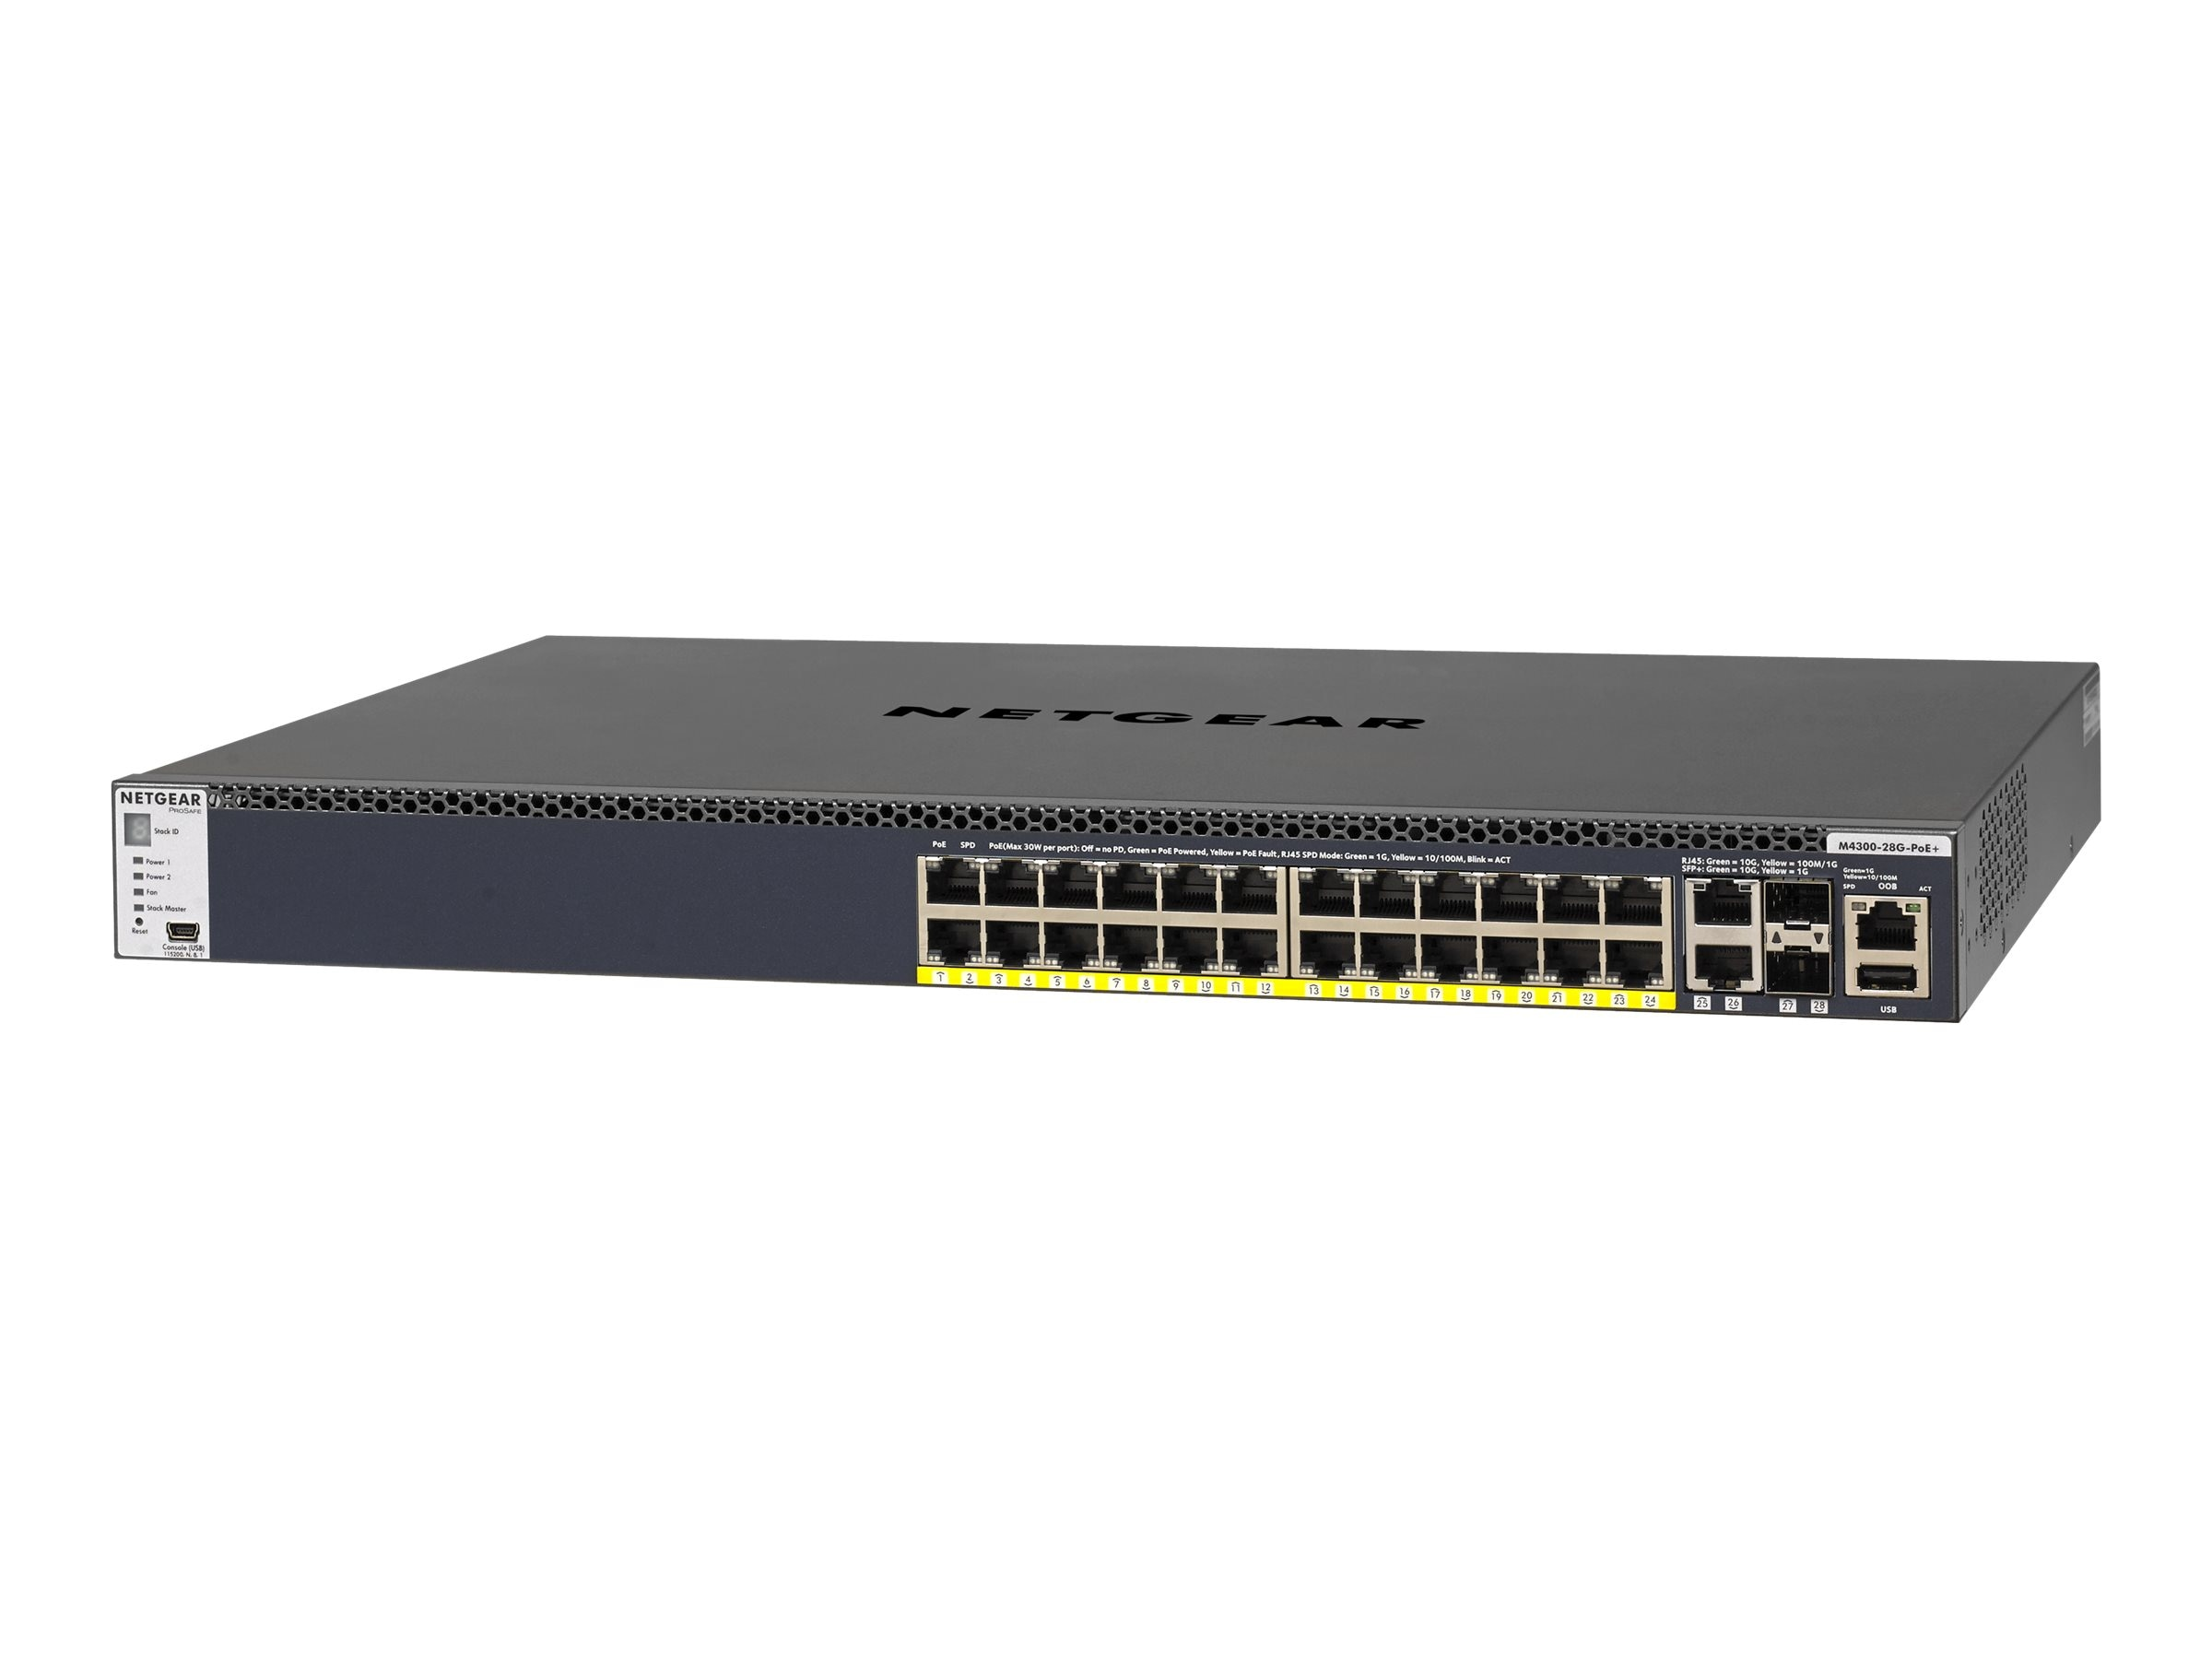 Netgear M4300-28G-PoE+ 24-Port Gb PoE+ Managed Switch, GSM4328PB-100NES